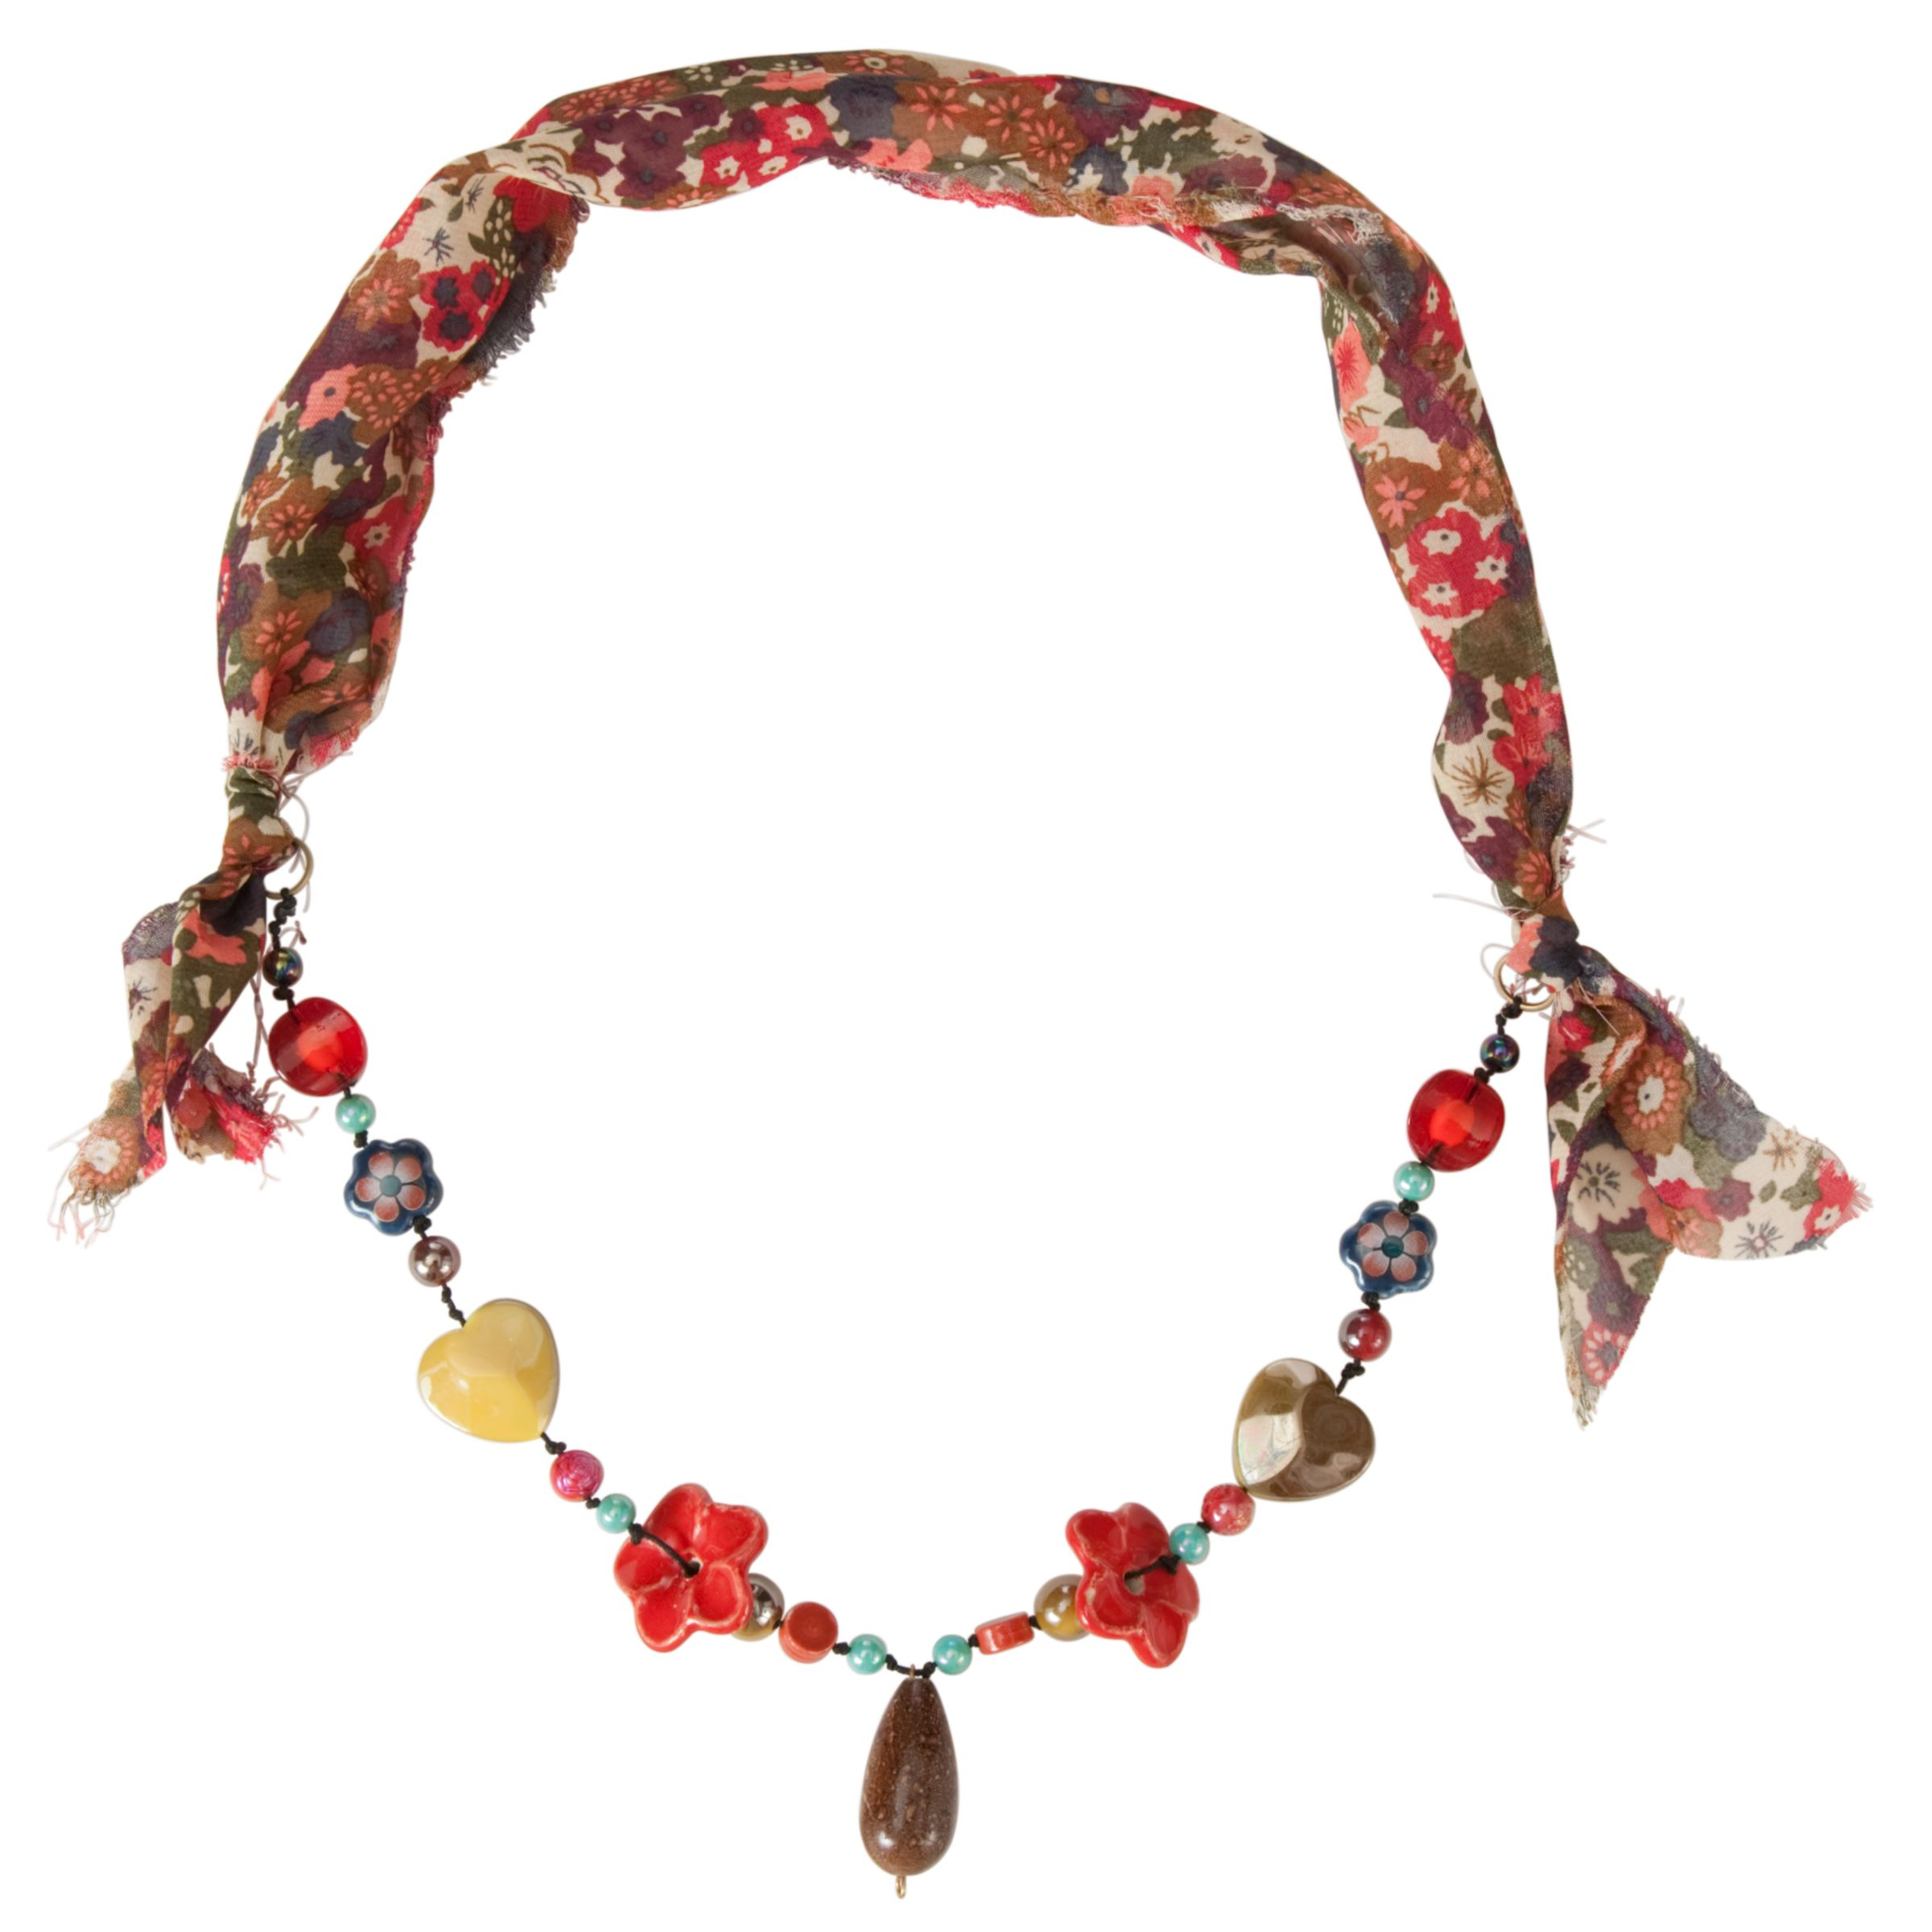 One Button Assorted Flower Beads Necklace, Cinamon/Brown